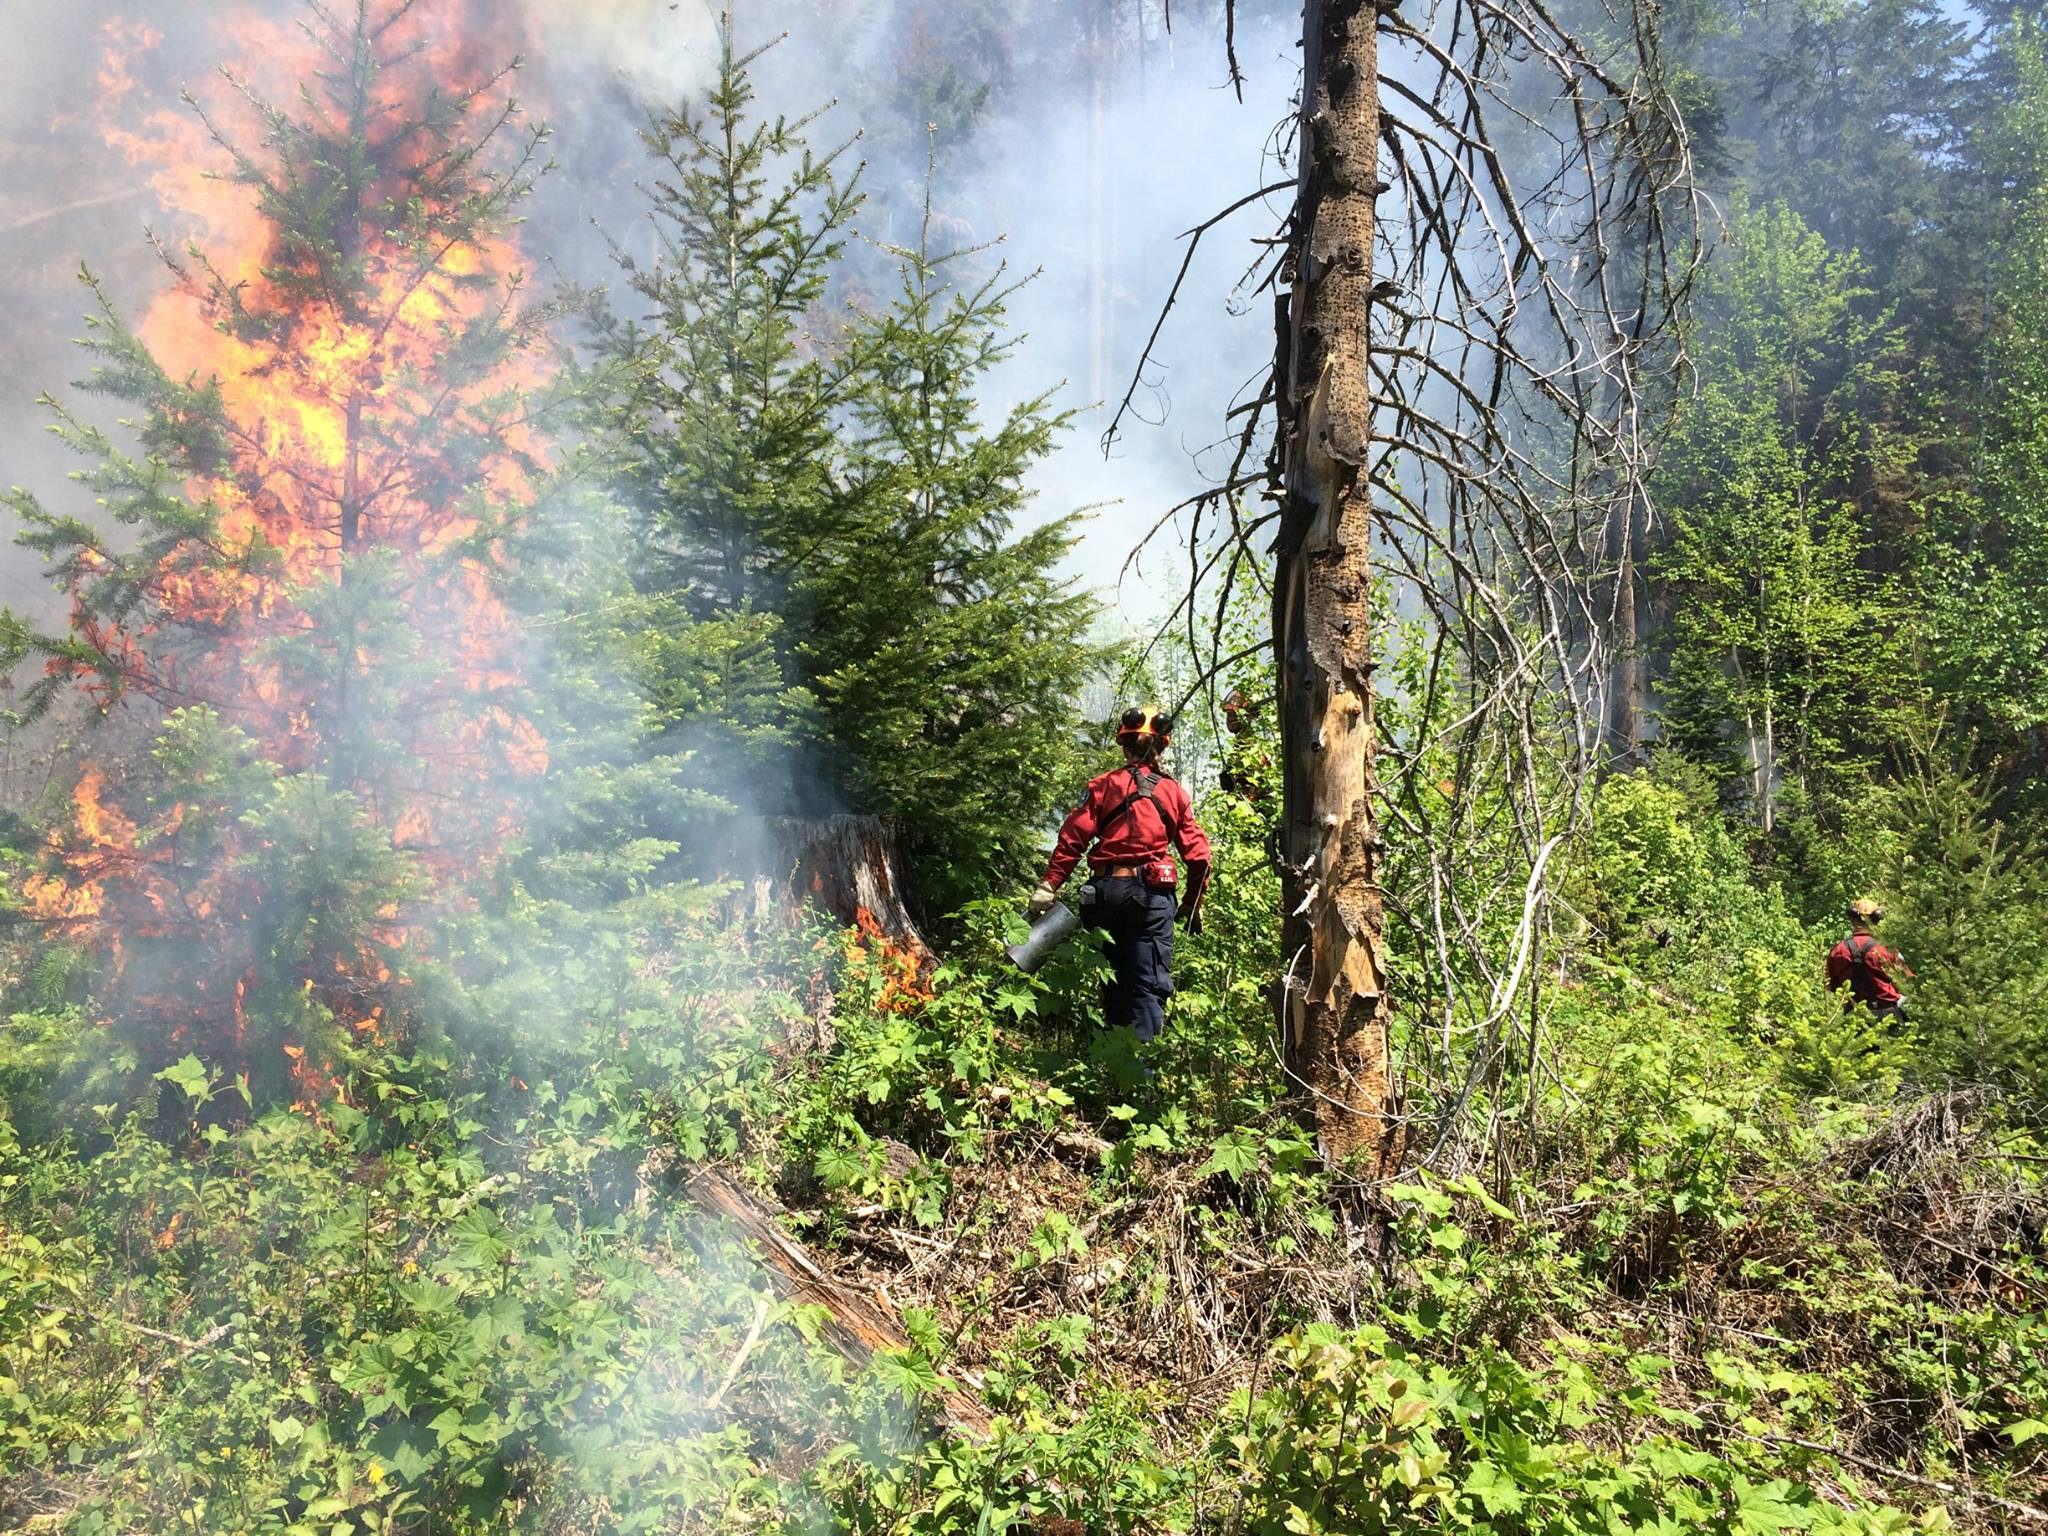 Wildfire crews optimistic as favourable weather conditions forecast for the weekend